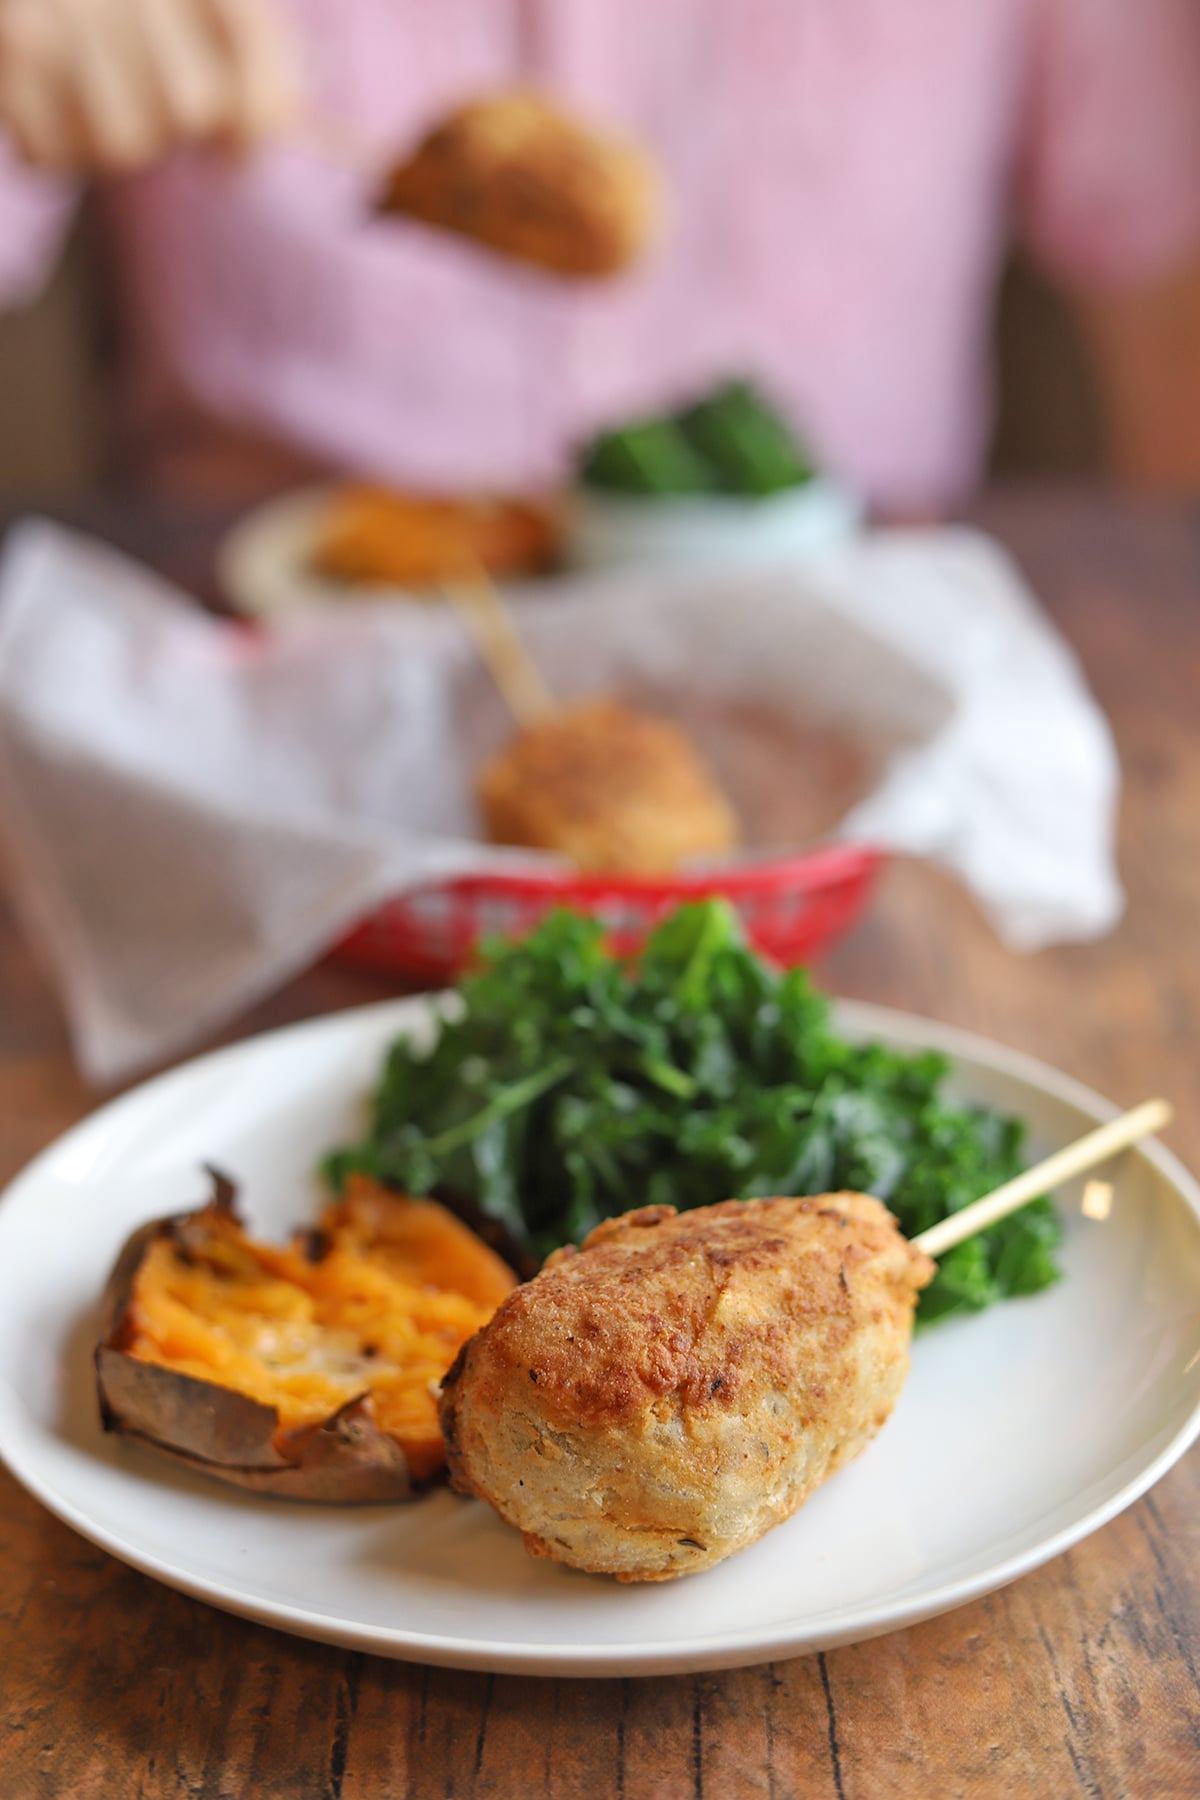 Vegan drumstick on plate with sweet potato and kale.